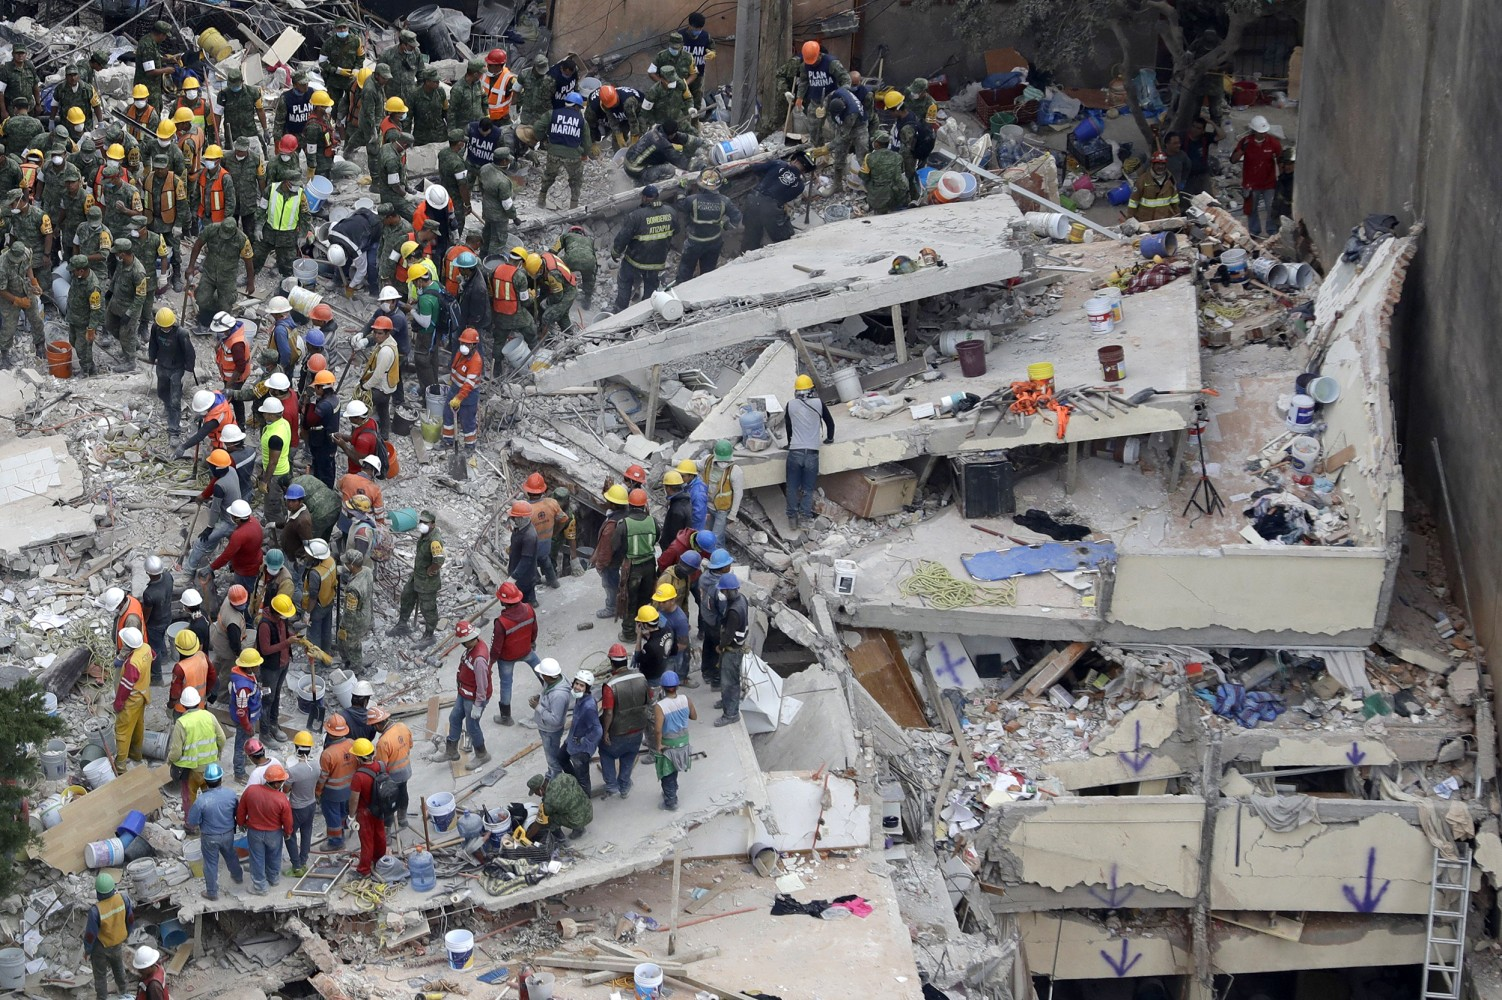 Mexico City Earthquake Death Toll 'At Least 225'